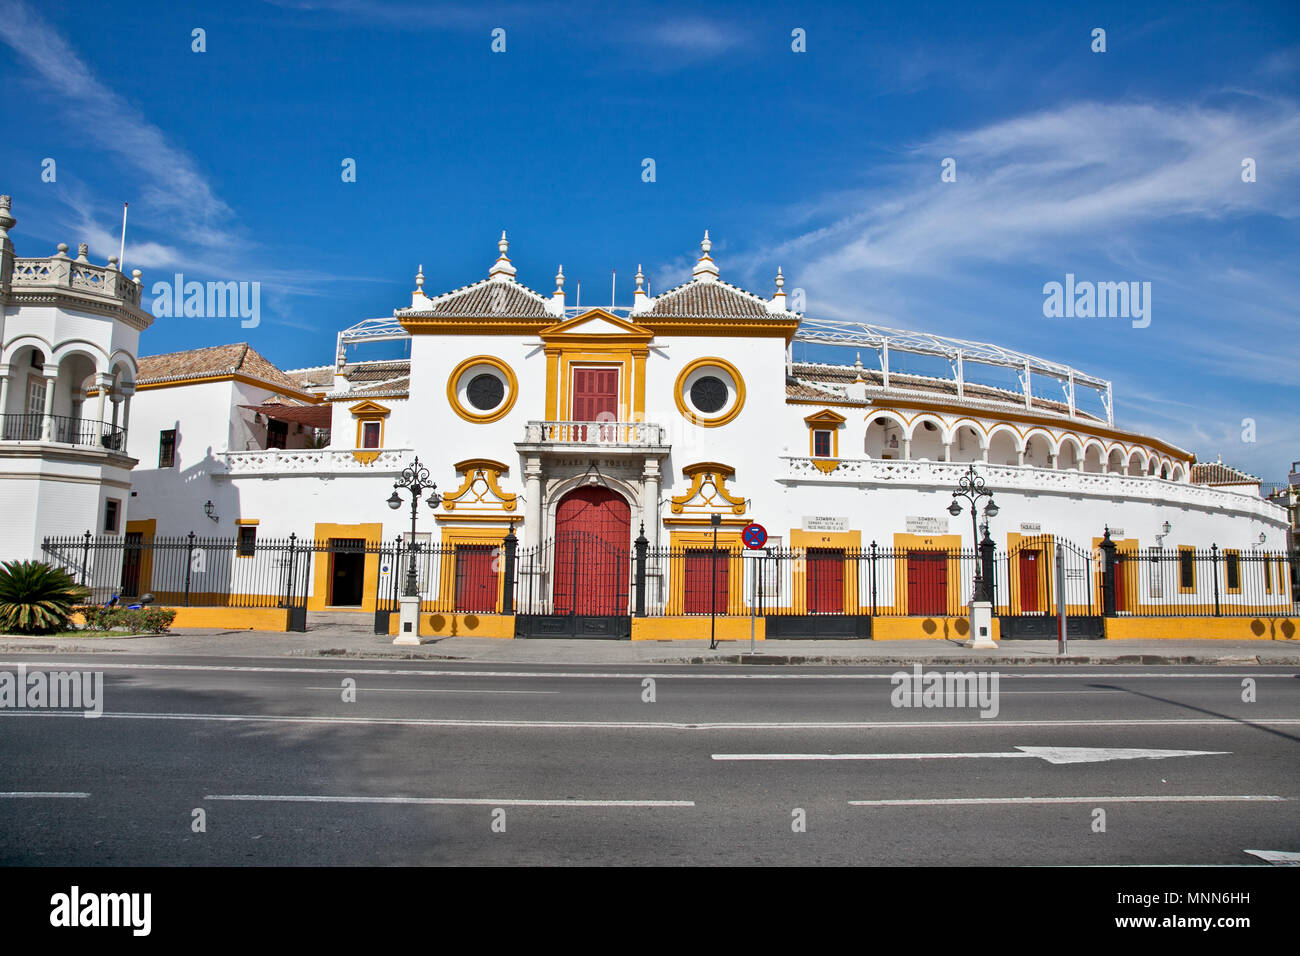 Real Maestranza de Caballeria de Sevilla in Seville, Andalusia,  Spain Stock Photo